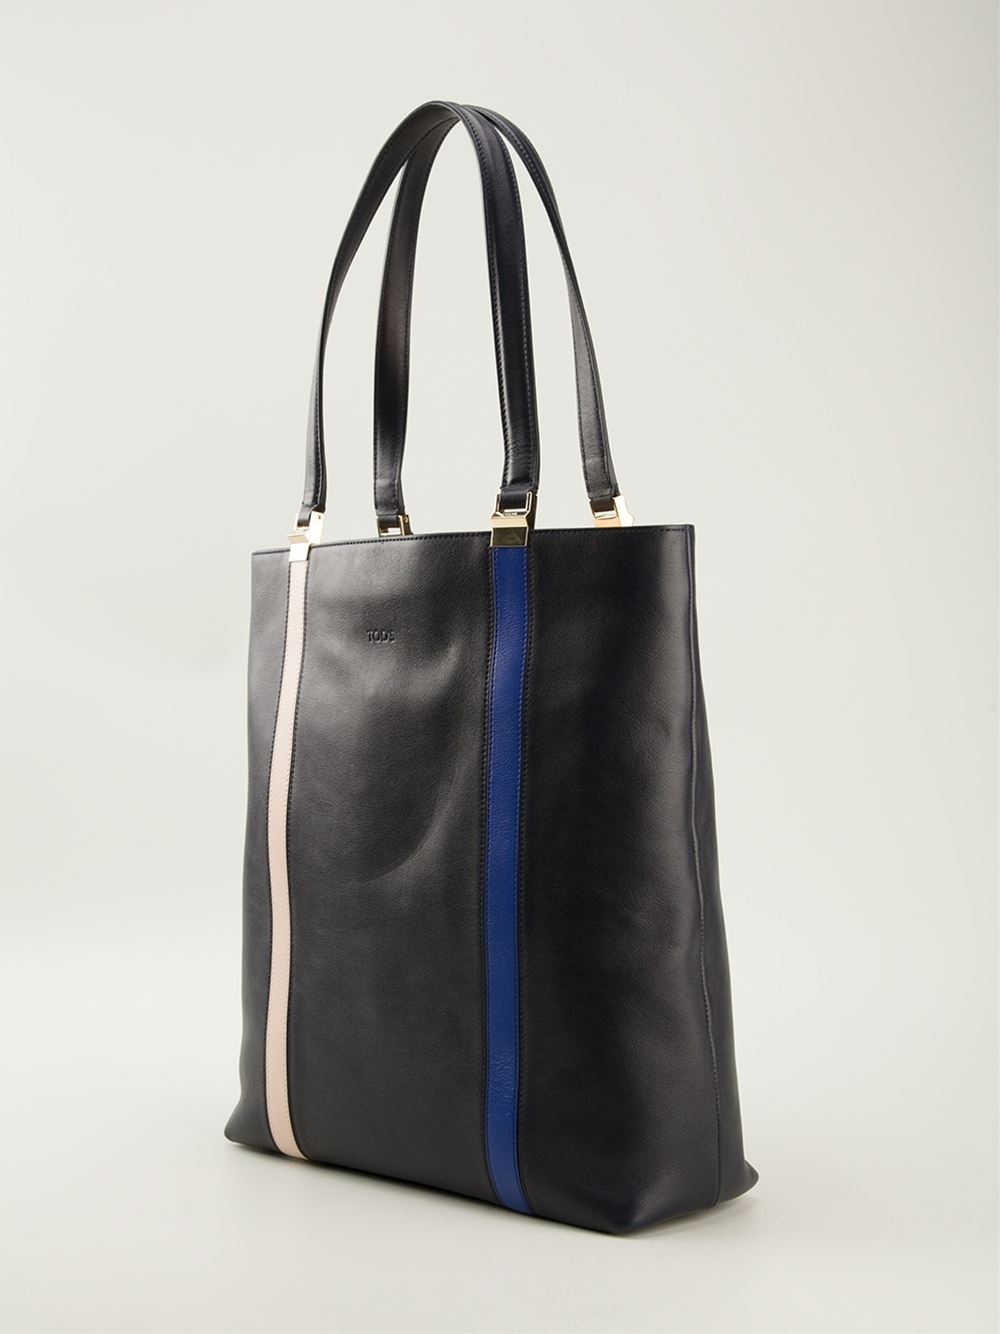 Sale Eastbay Tod's medium tote bag Quality Outlet Store Free Shipping Official hww6EhHO